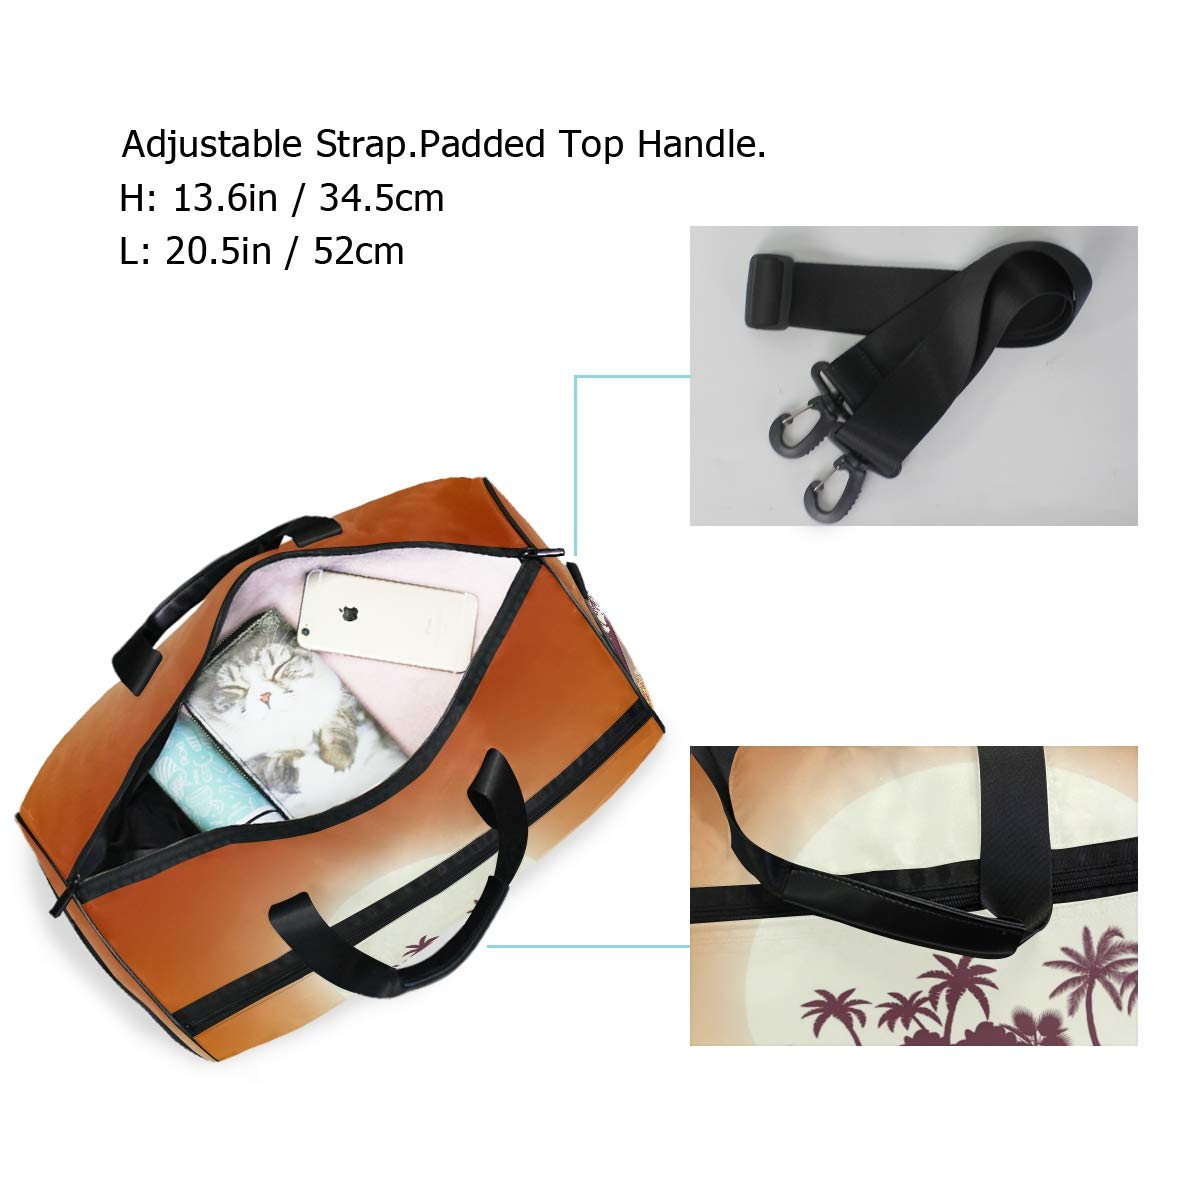 Gym Travel Duffel Bag Hot Tropical Island With Palm Trees Waterproof Lightweight Luggage bag for Sports Vacation